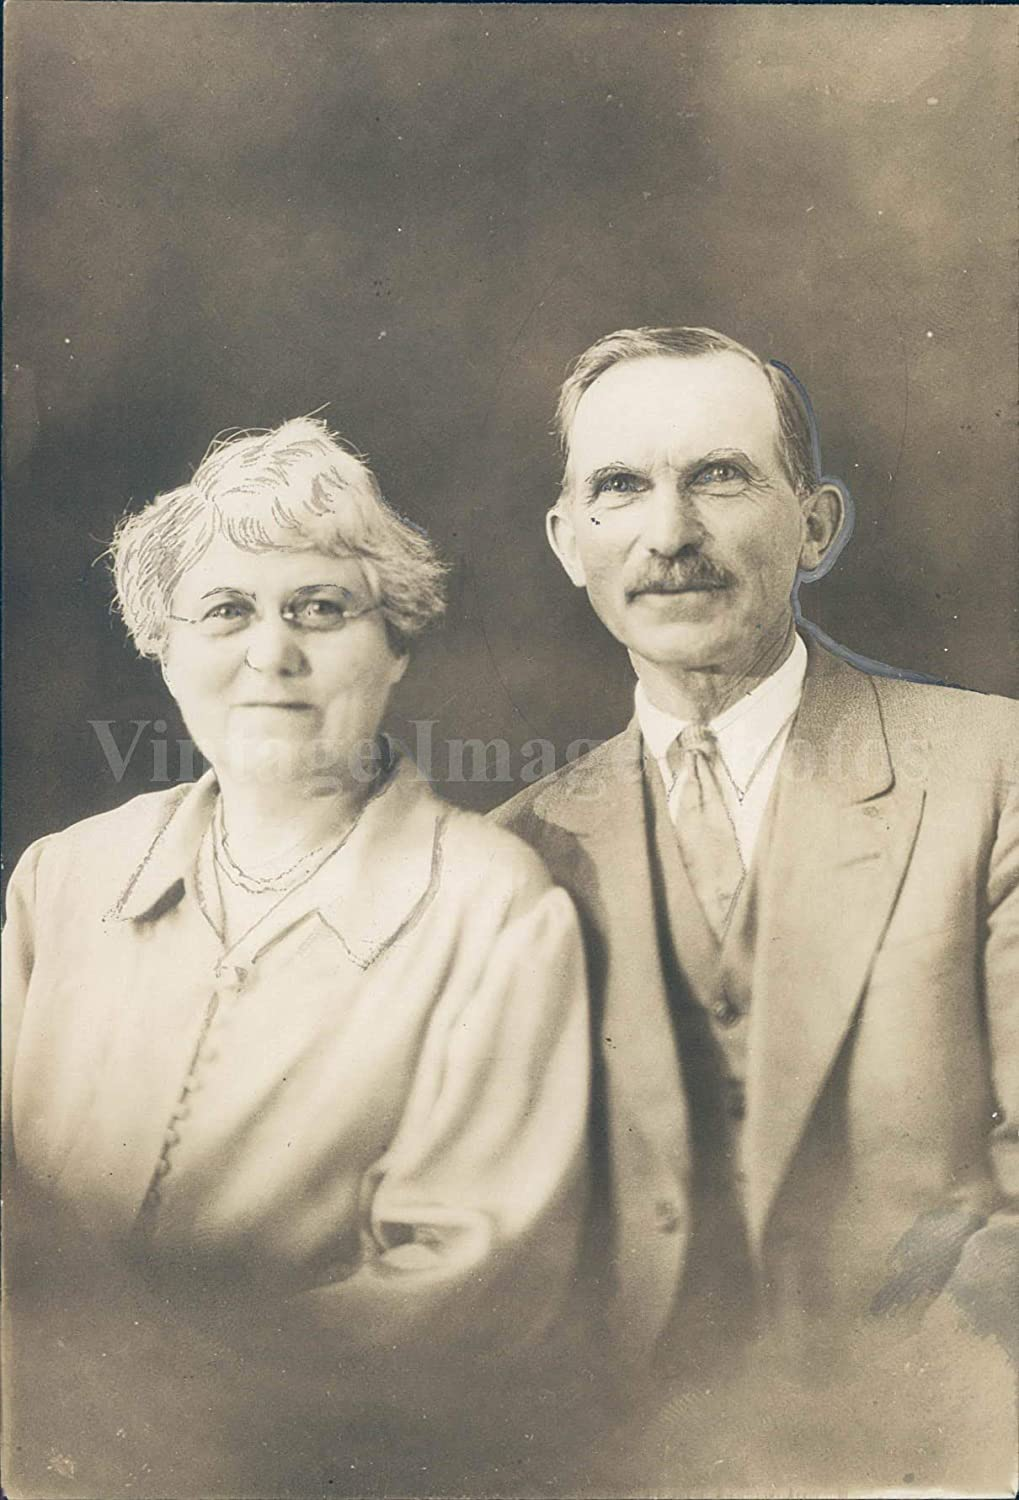 Amazon.com: Vintage Photos 1928 Photo Samuel Ackley Mrs Alice Hubbard Brother  Sister Portrait Smiling Face: Photographs